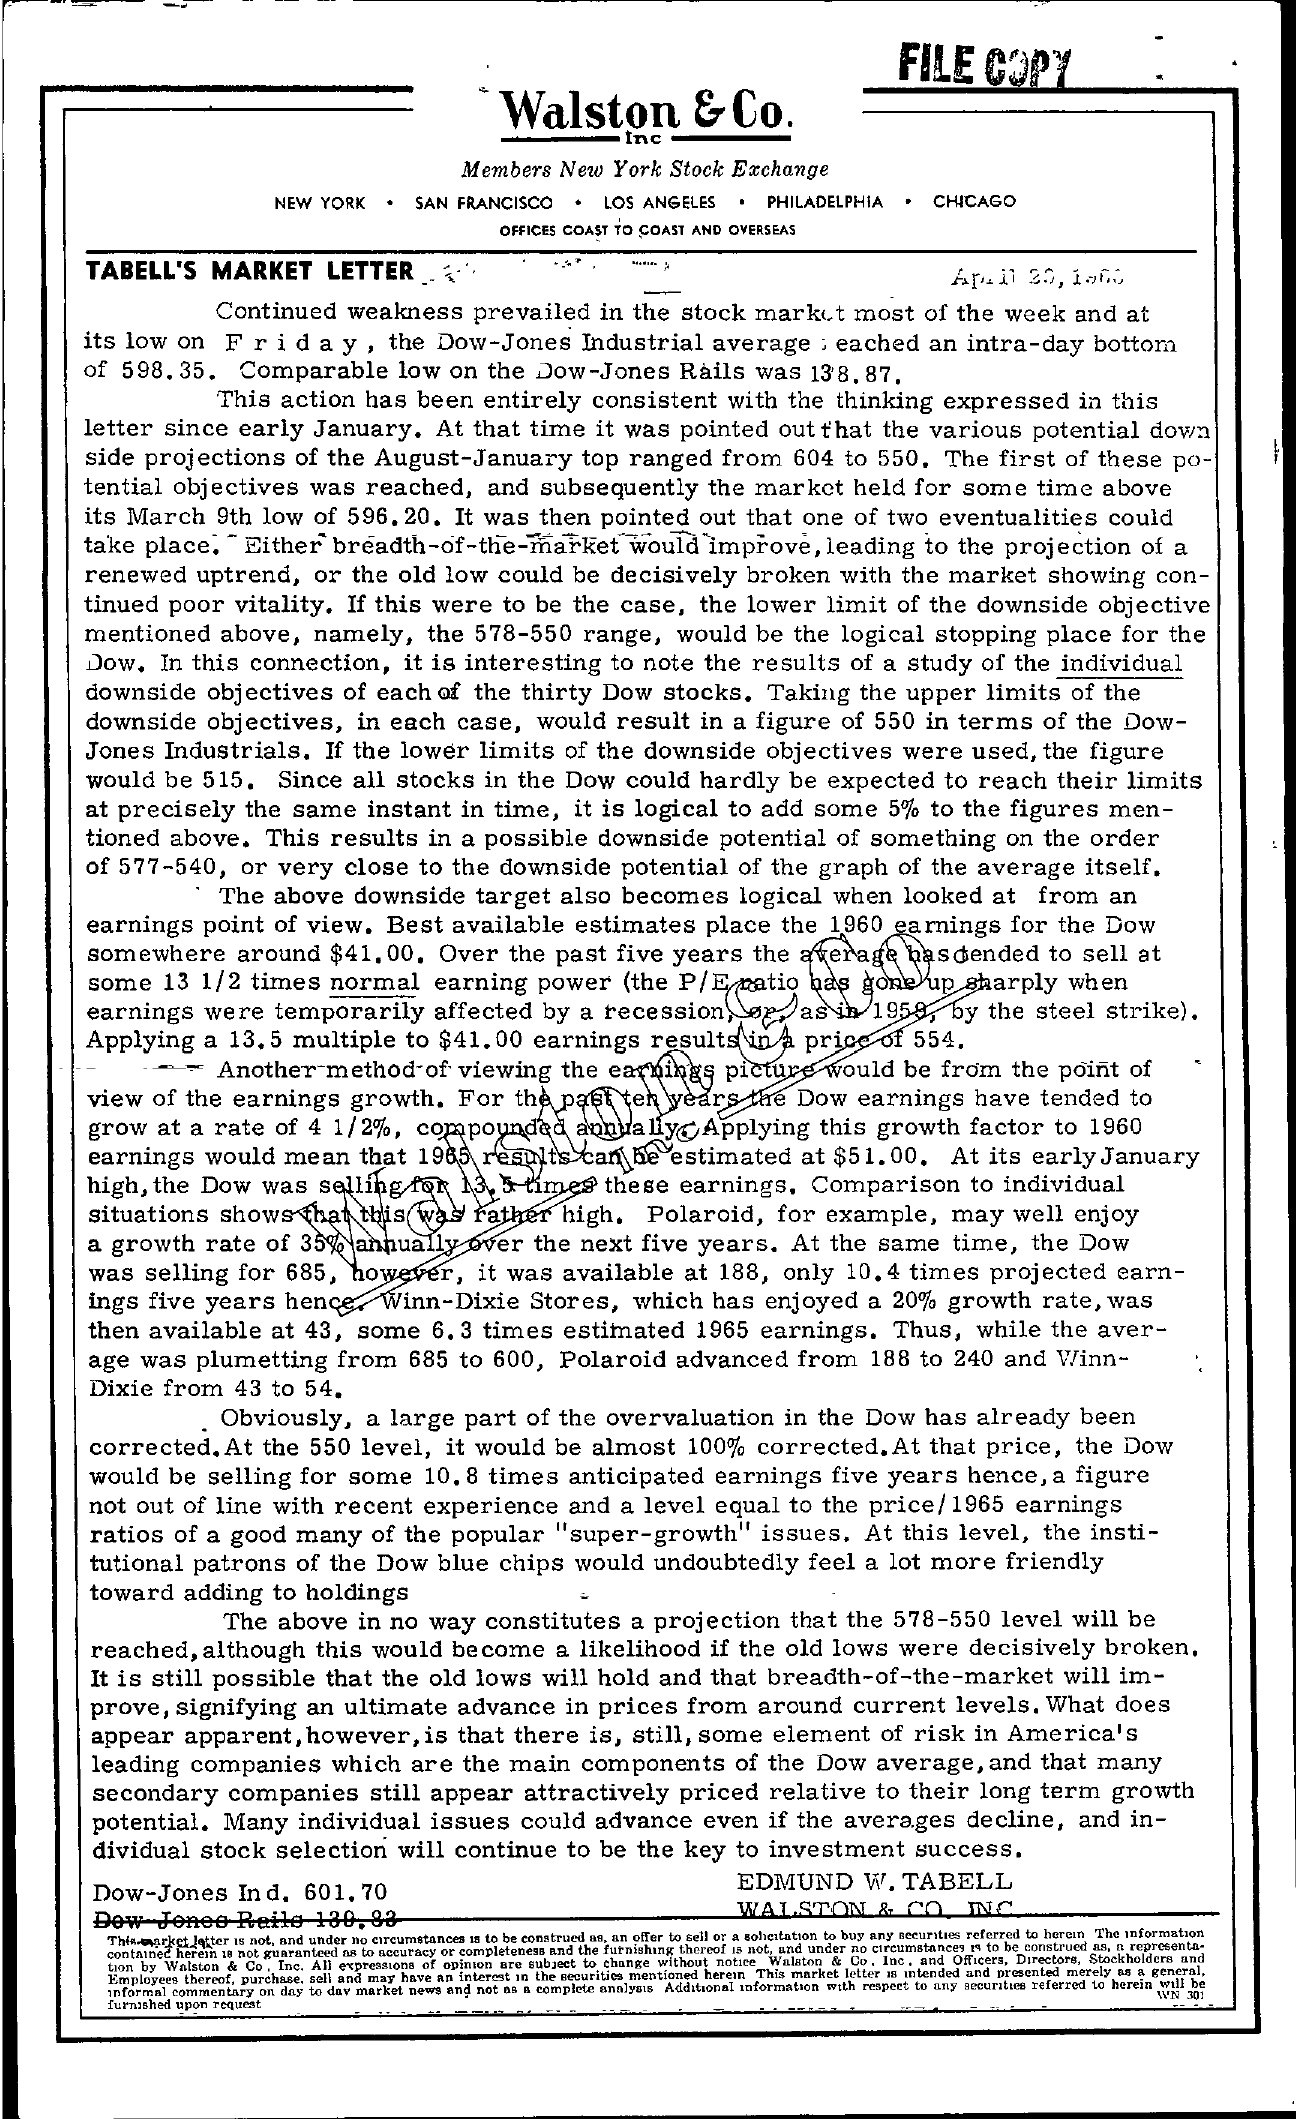 Tabell's Market Letter - May 30, 1960